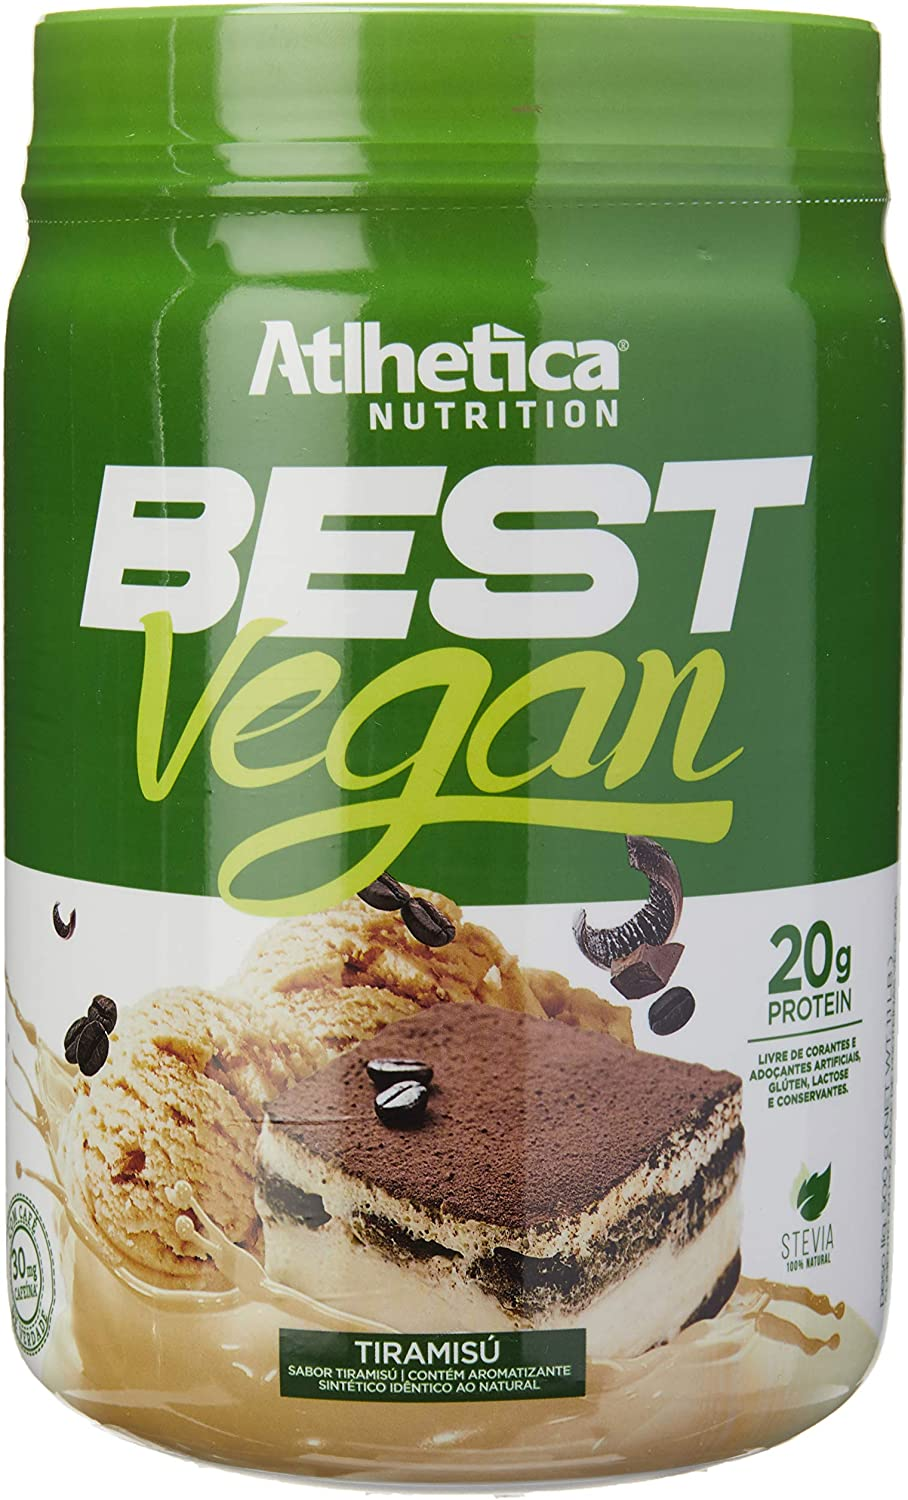 Best Vegan Tiramisú, Athletica Nutrition, 500G